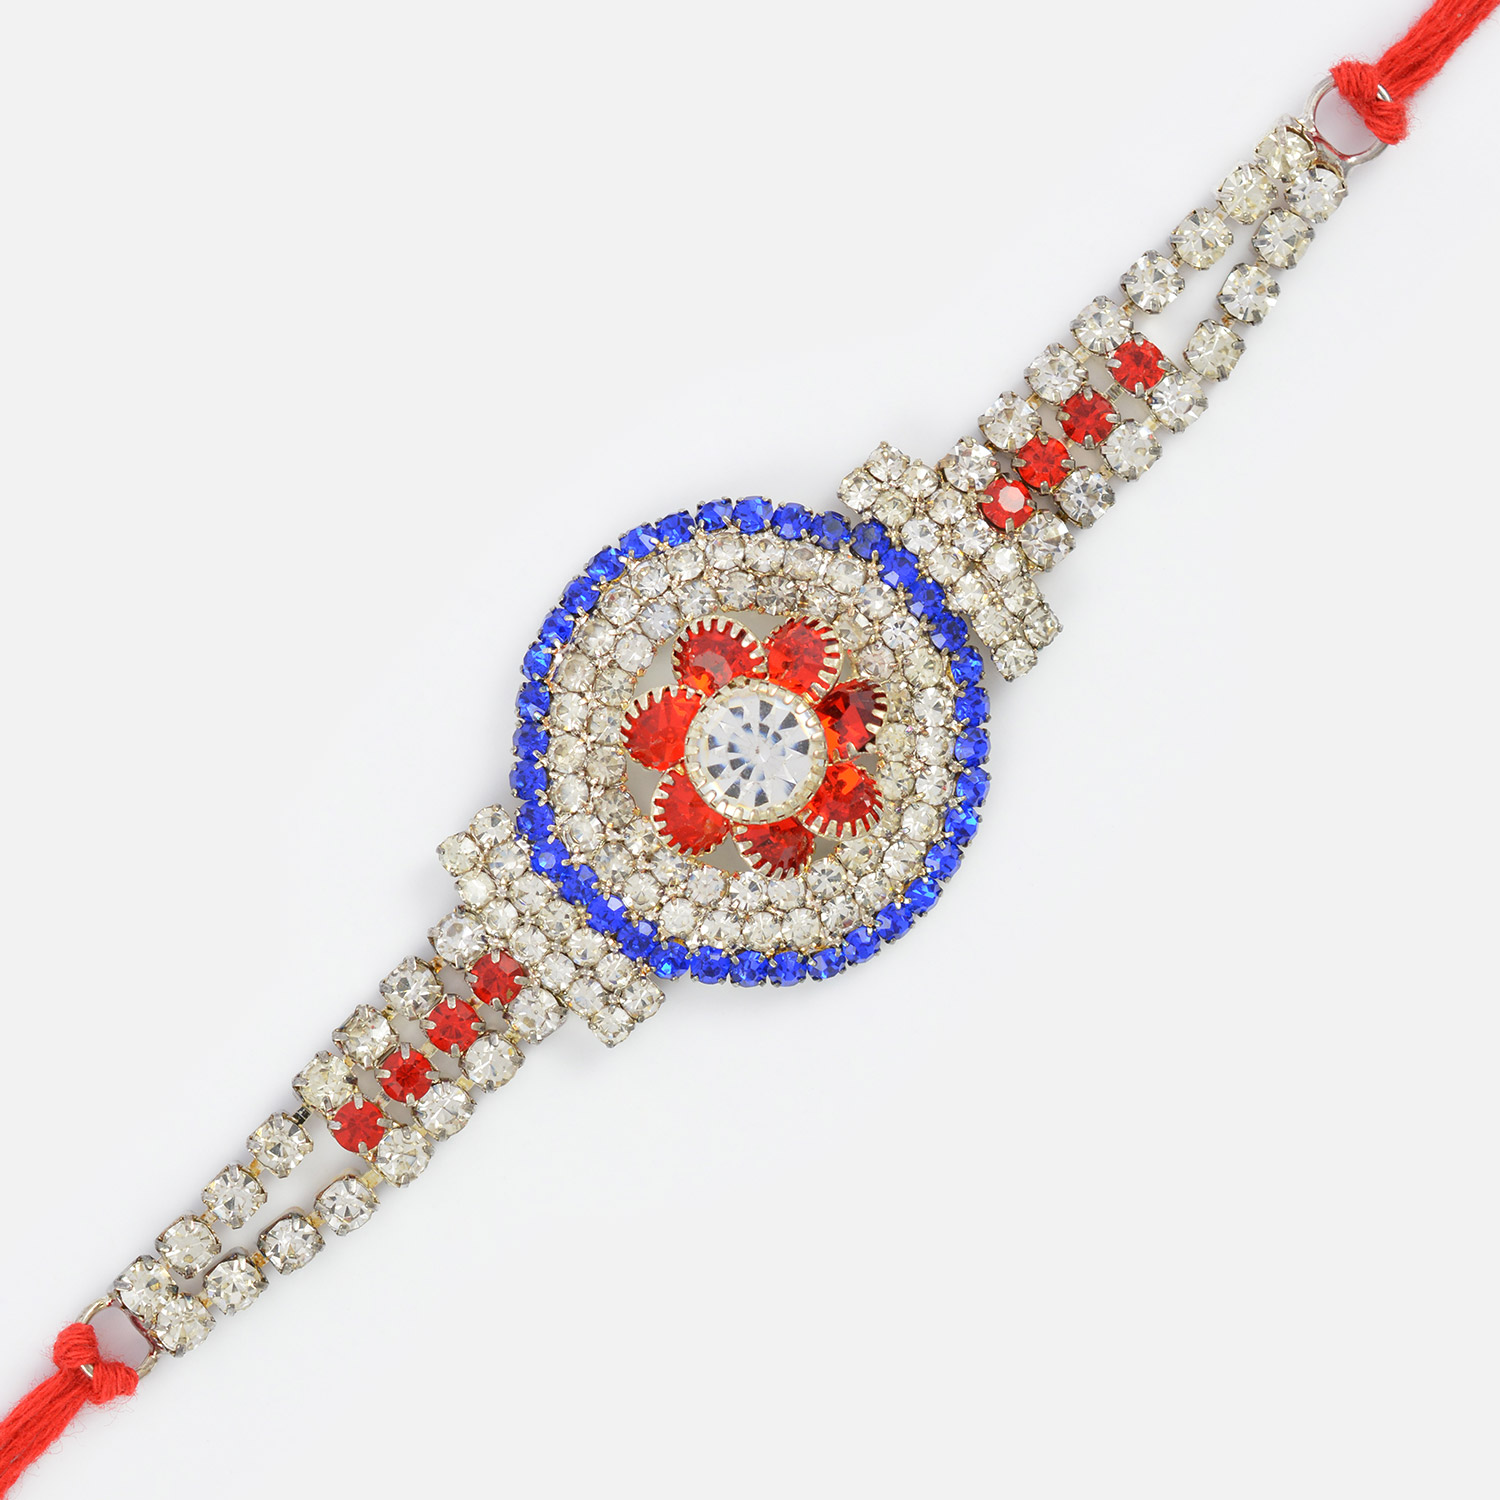 Stylish Silver Net and Jewel Rakhi